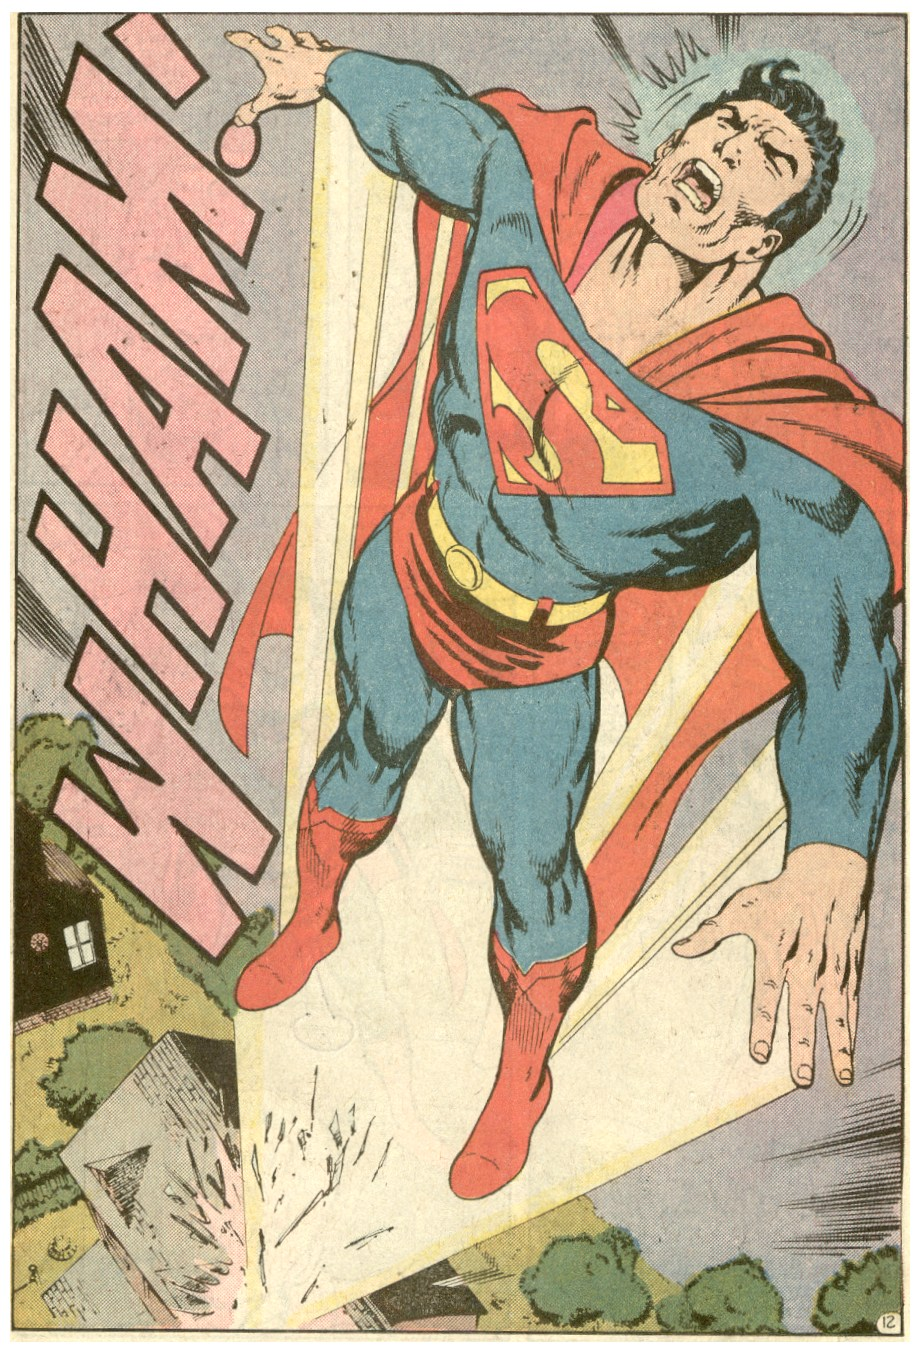 Superman fights 2